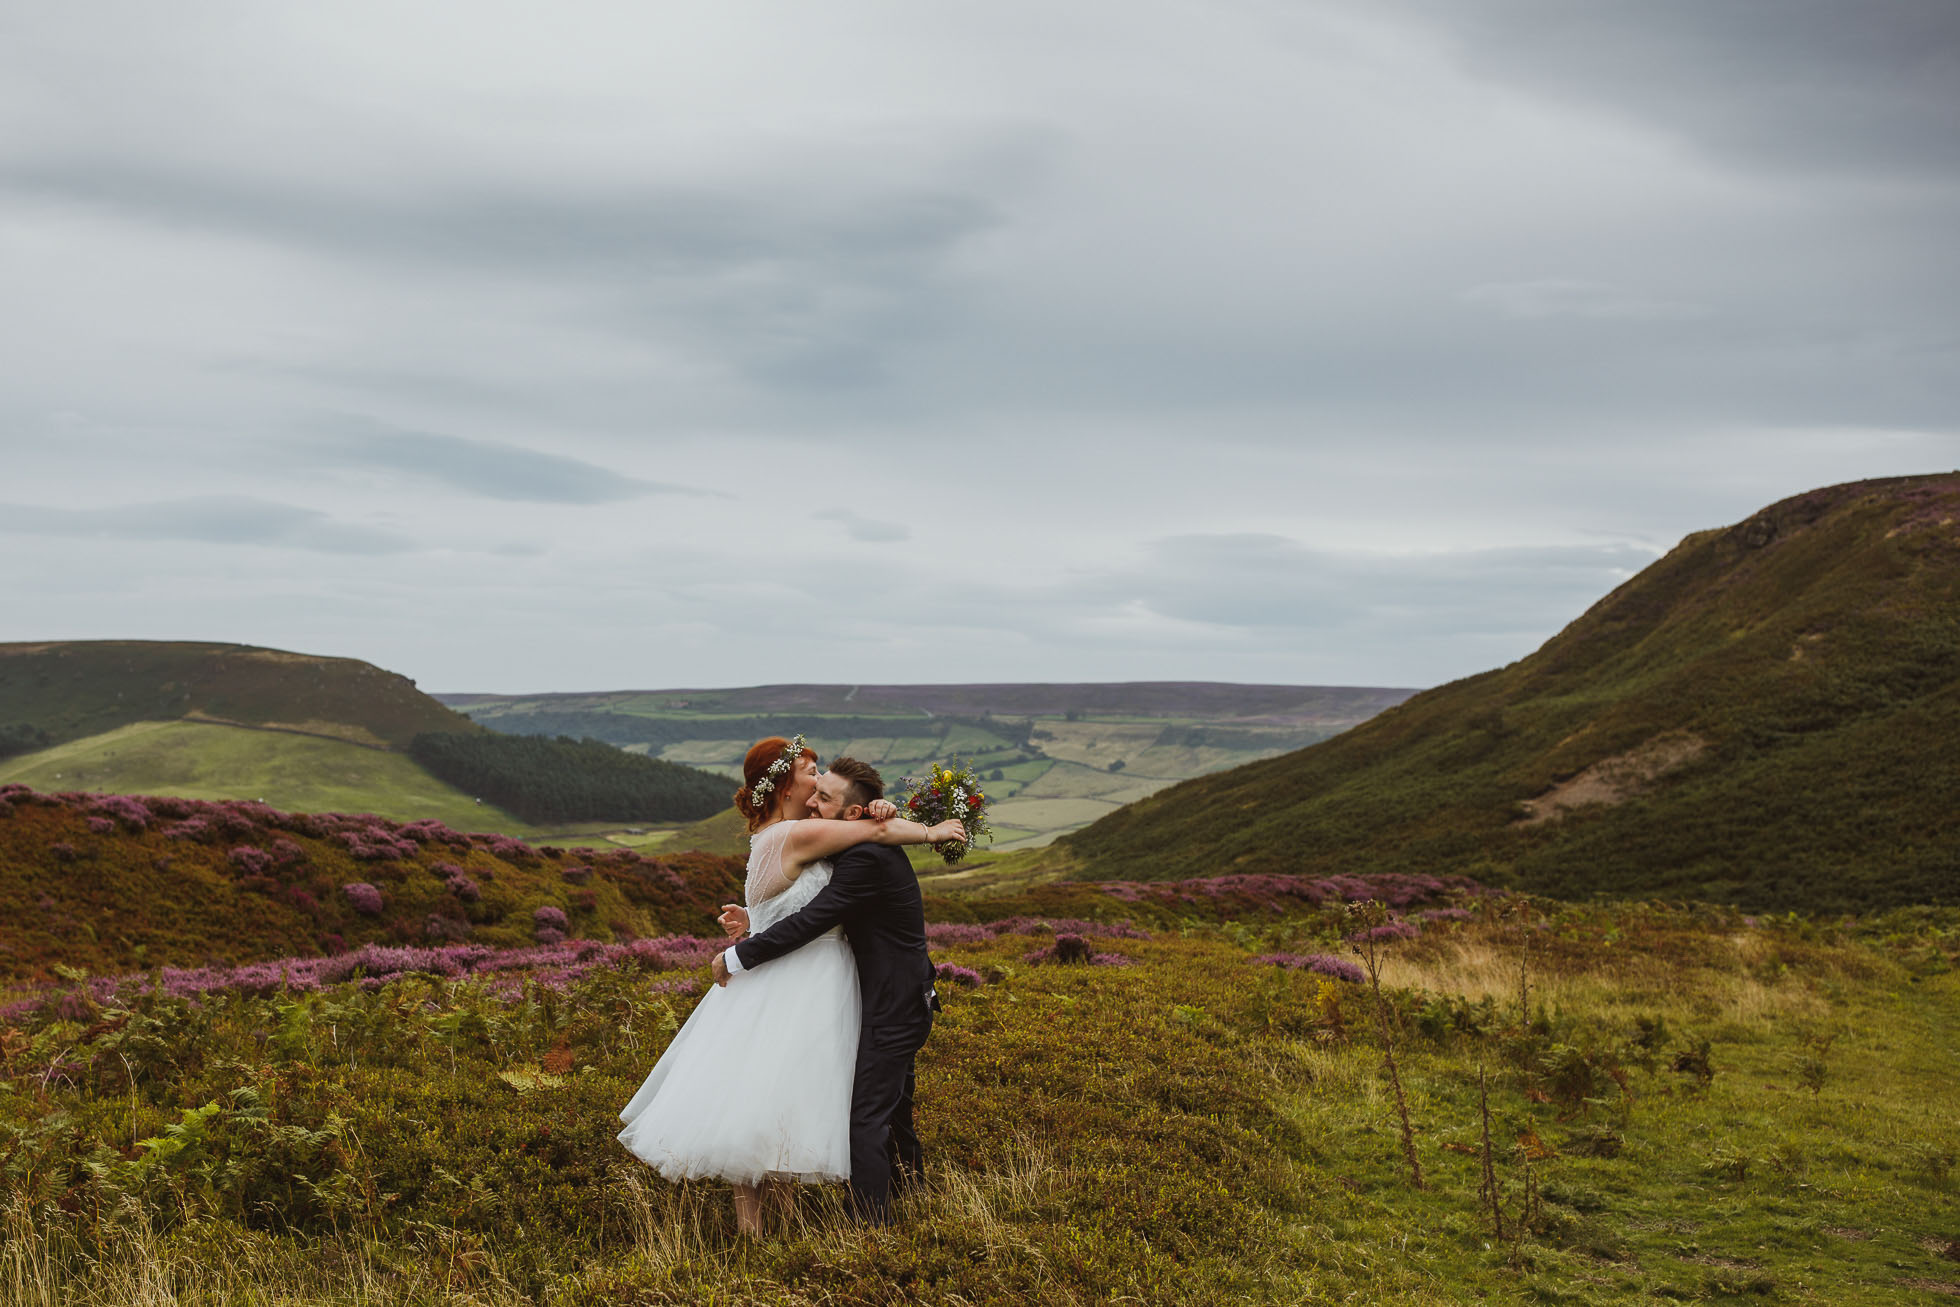 danby_castle_wedding_photographer-76.jpg